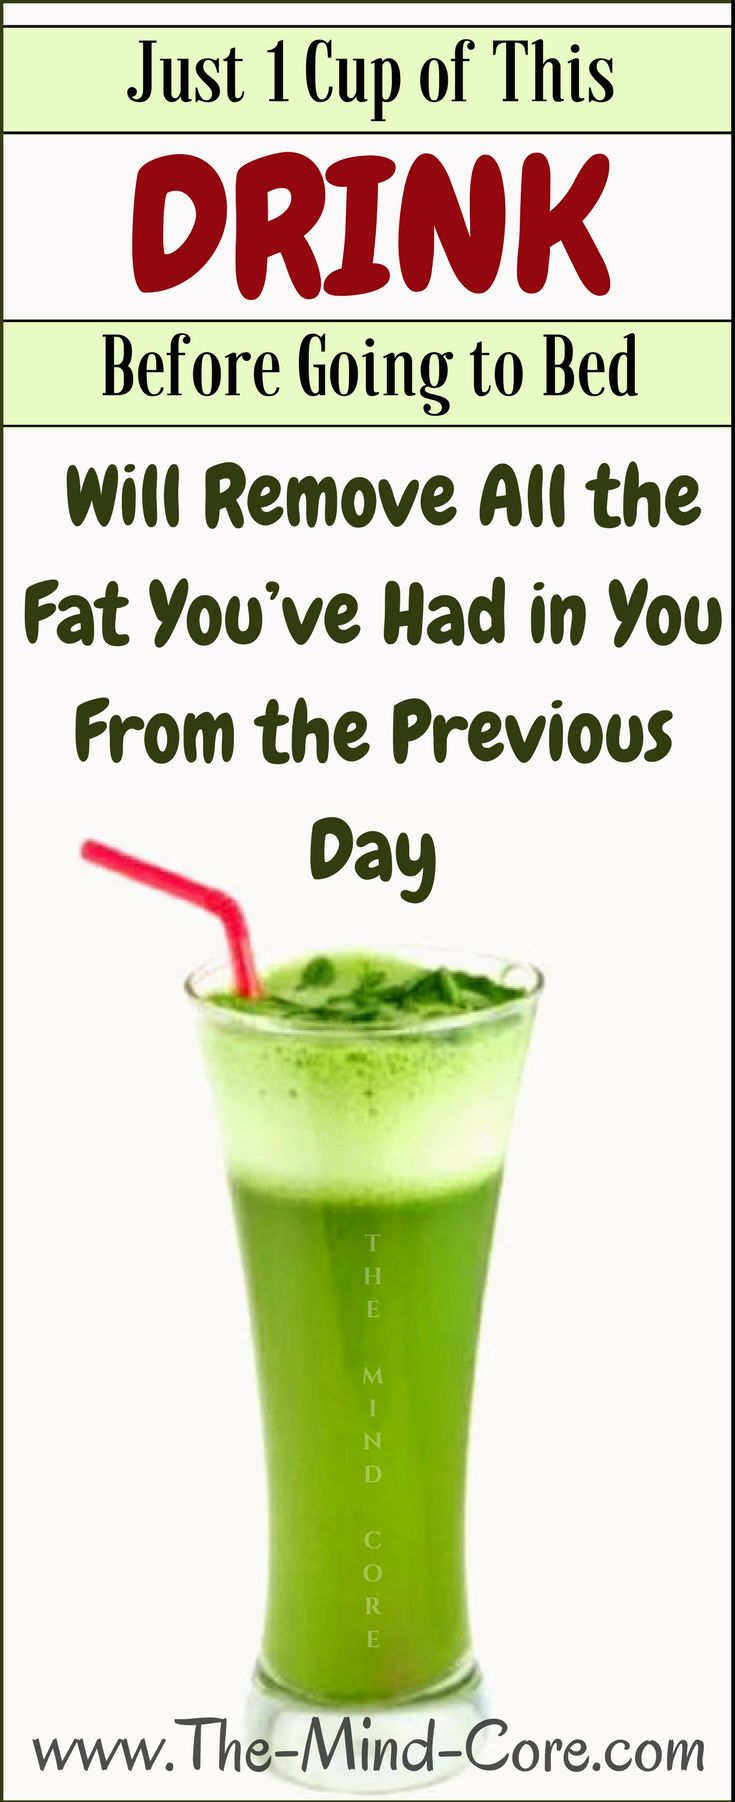 Just 1 Cup of This DRINK Before Going to Bed Will Remove All the Fat You've Had in You From the Previous Day!